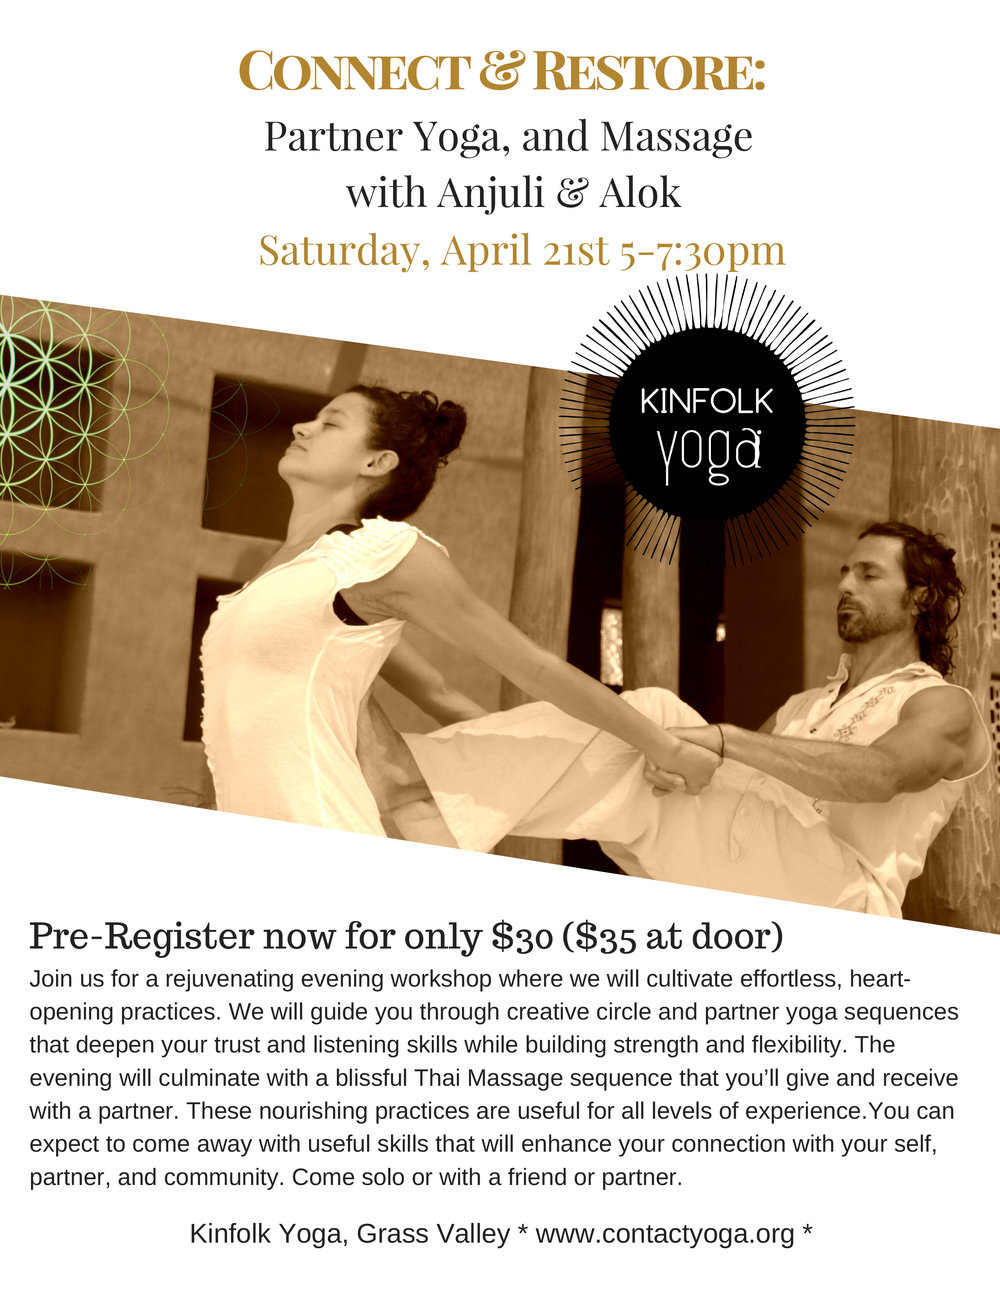 Kinfolk Yoga Partner Yoga  Massage